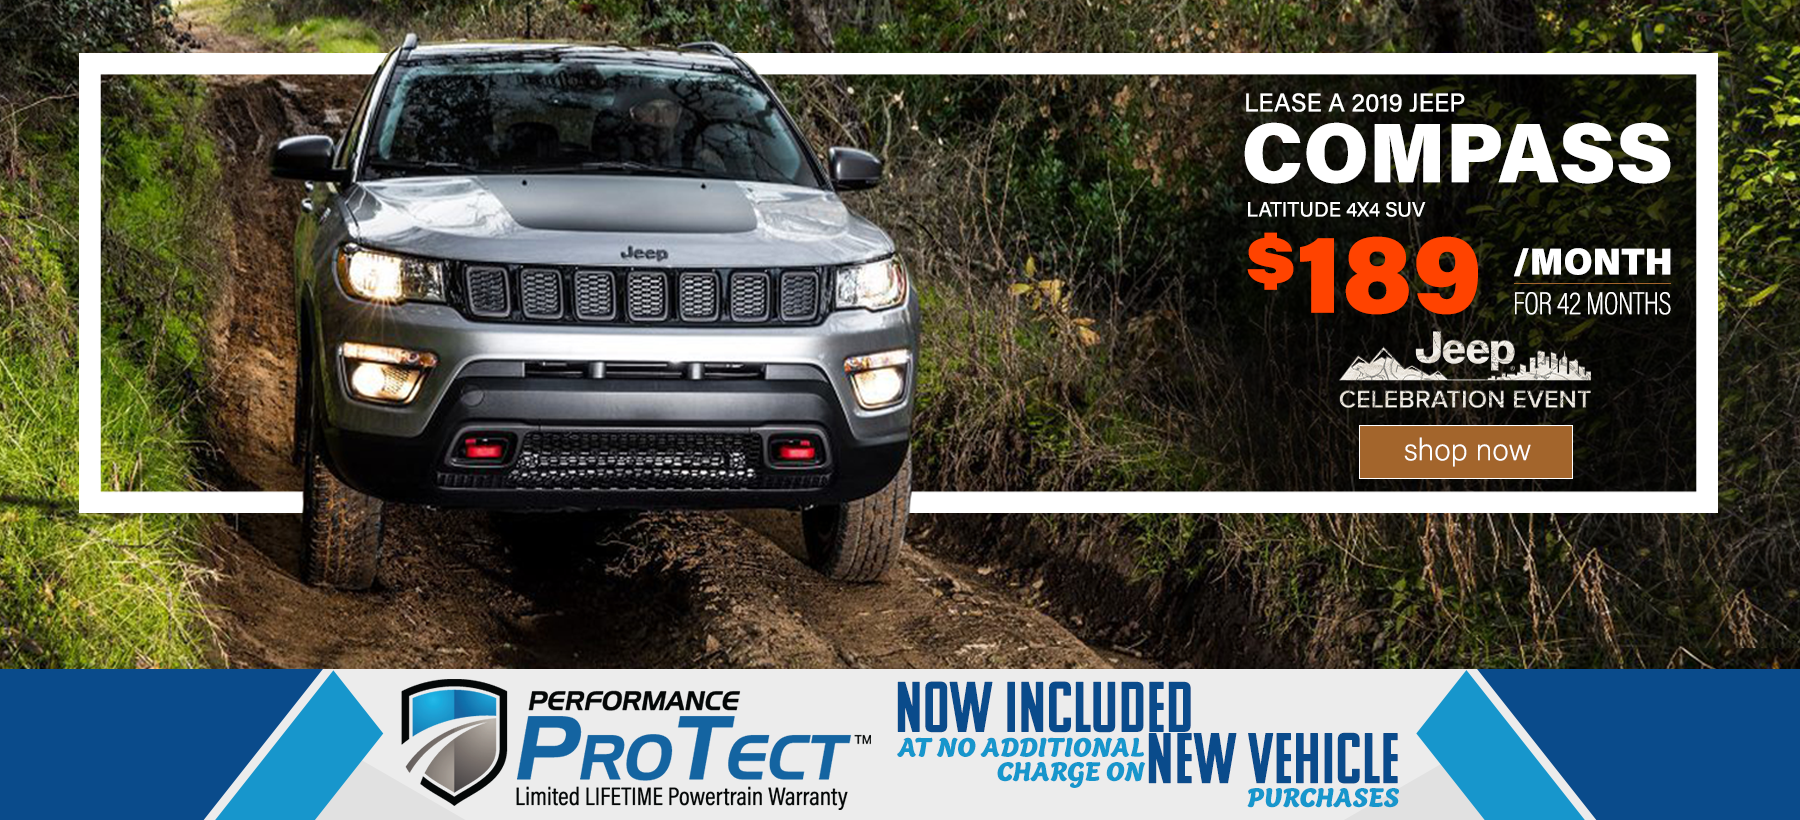 new-2019-jeep-compass-lease-deal-dayton-ohio